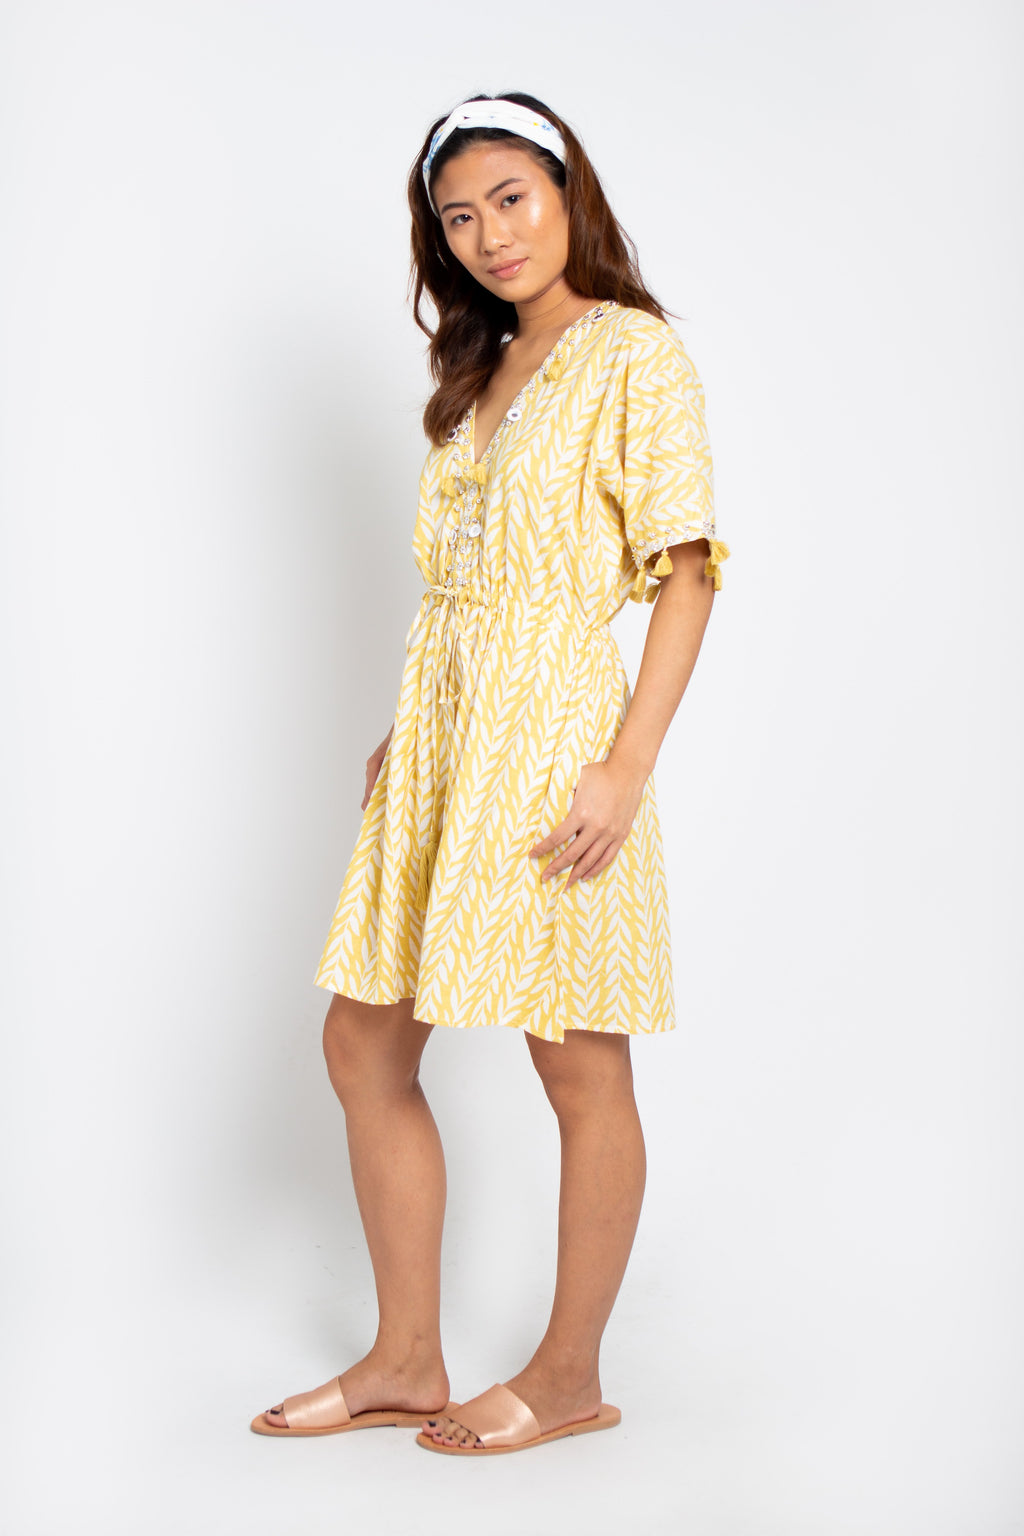 Shell Short Dress Yellow Wheat